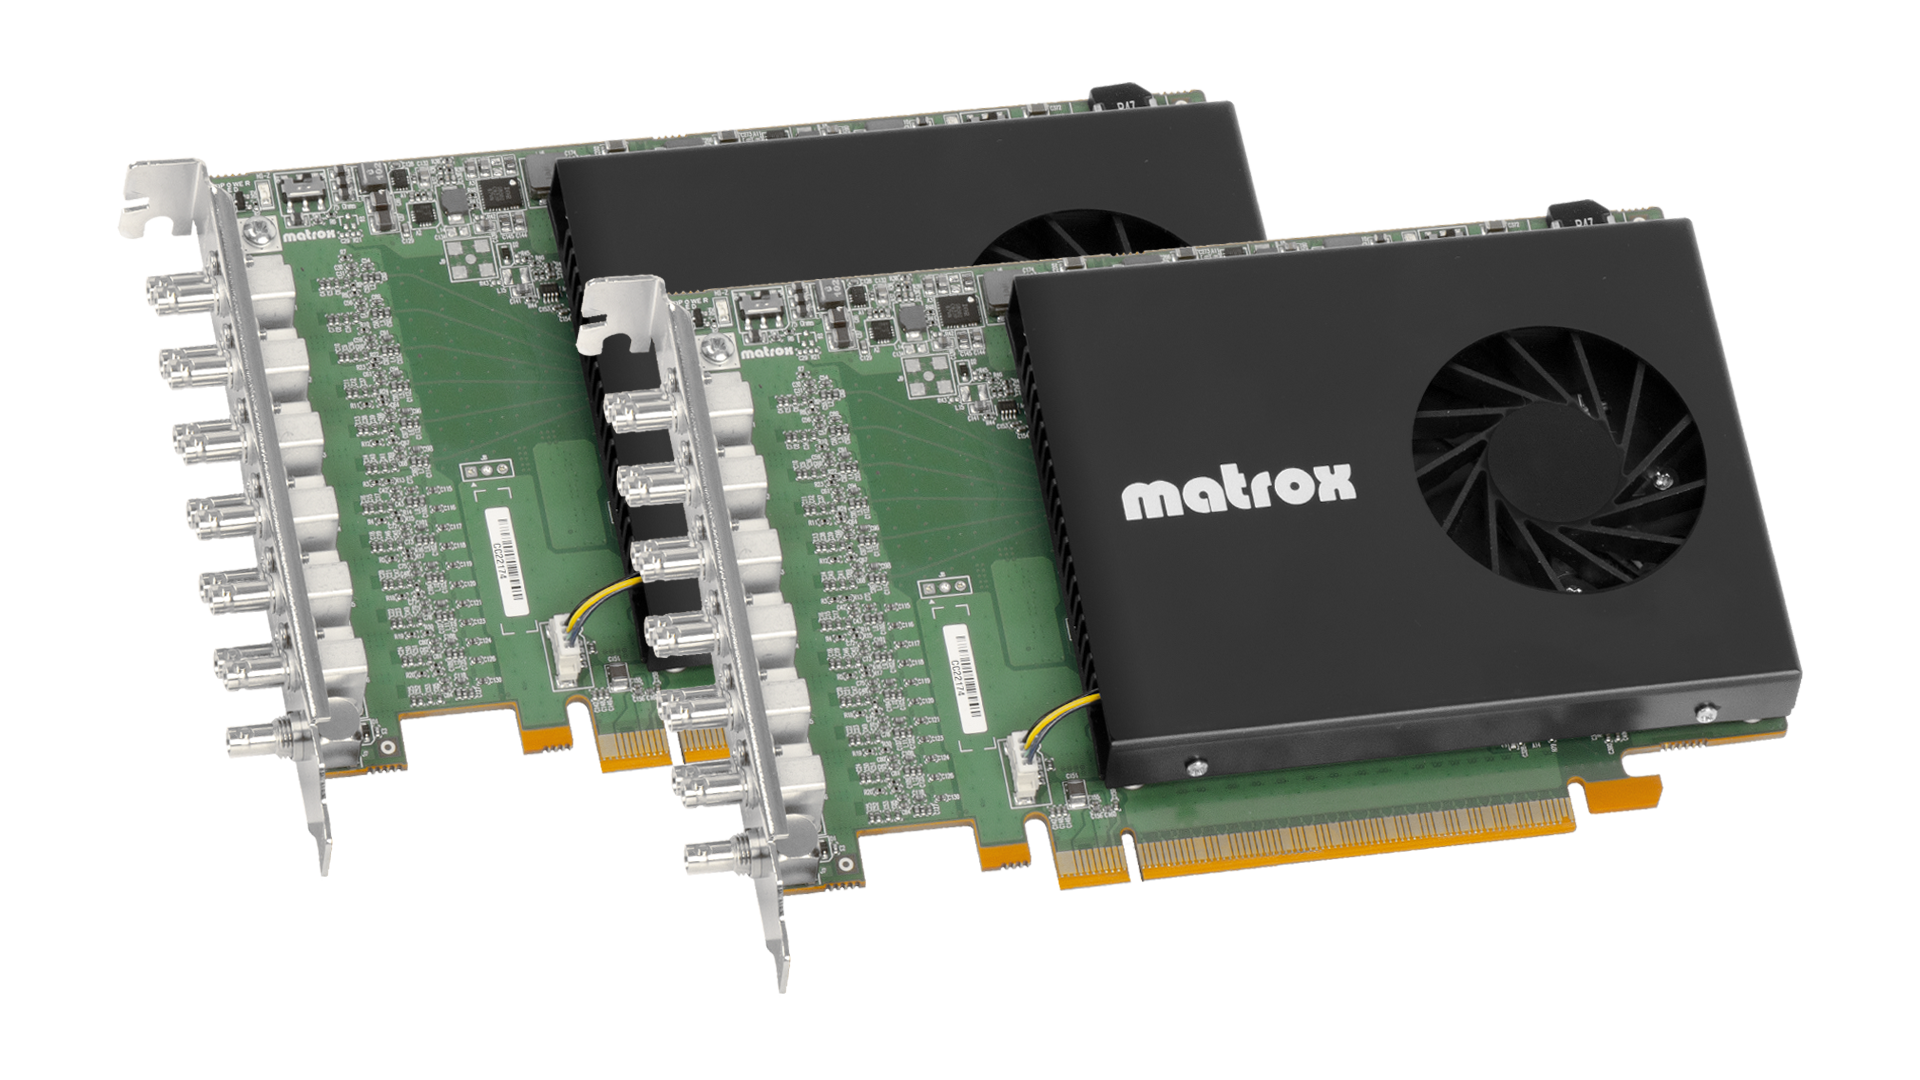 Matrox X.mio5 12G and Matrox DSX LE5 12G SDI I/O Cards